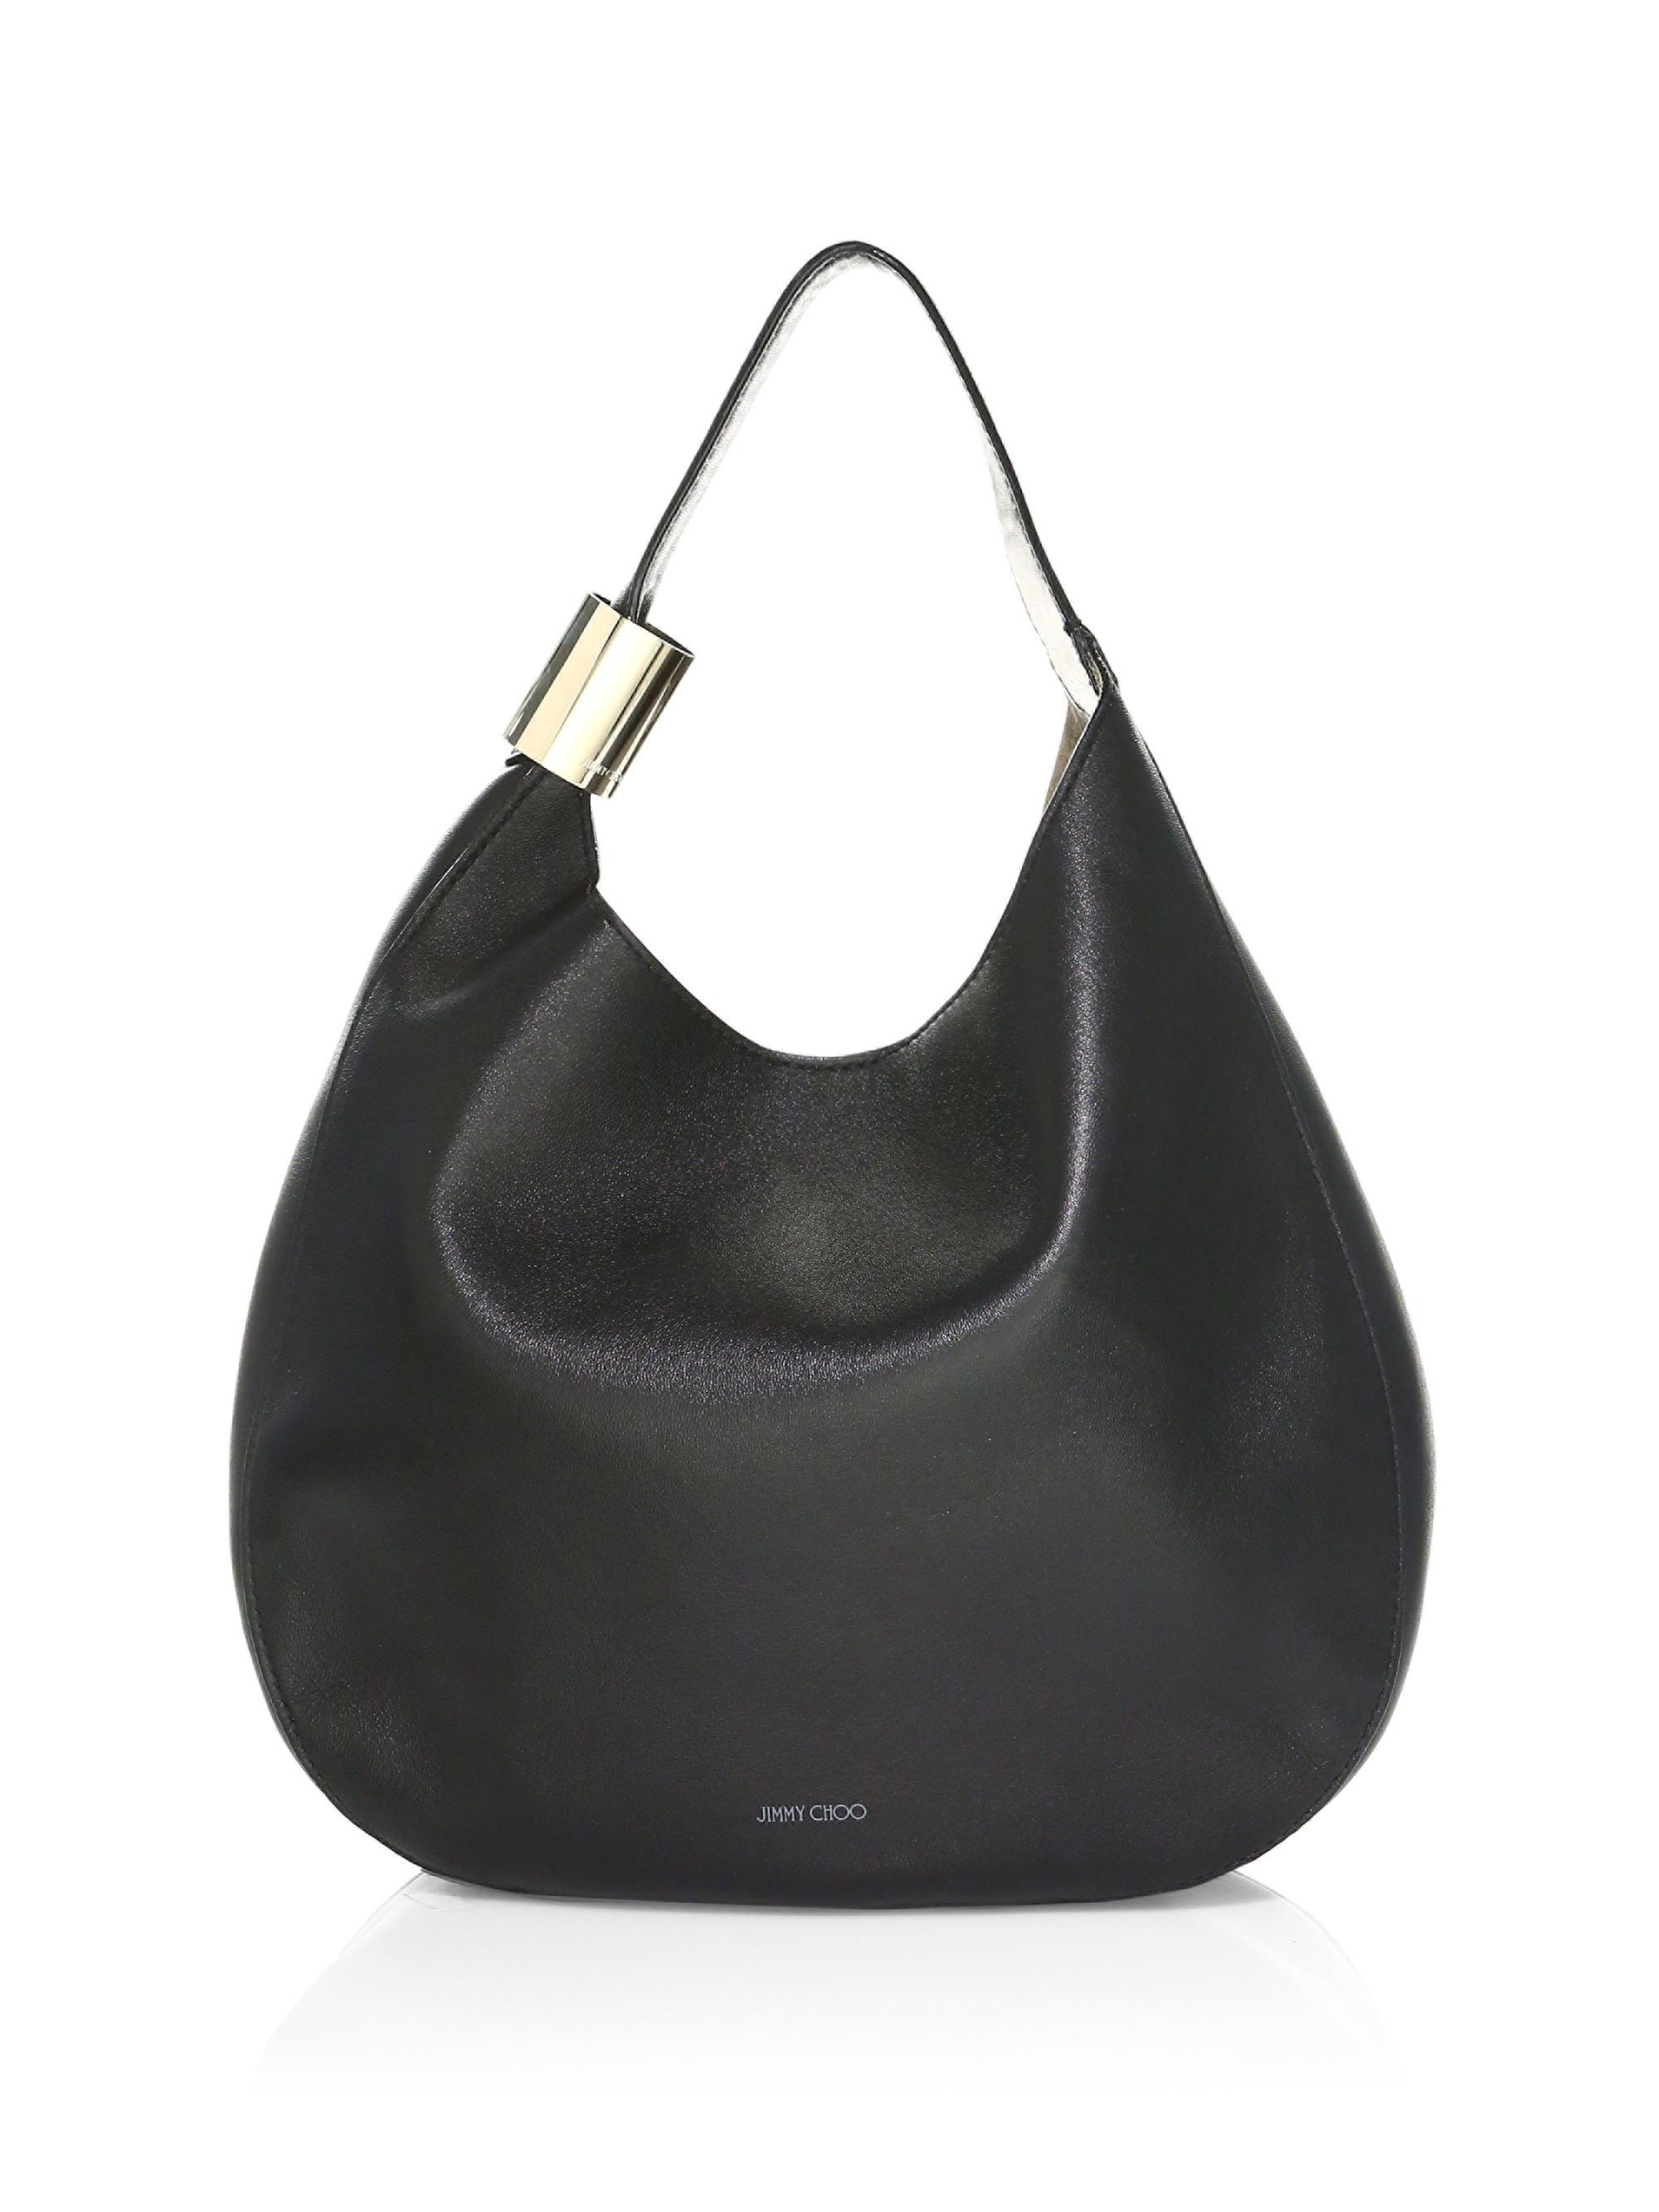 30231cca2cf Looking for affordable handbags? Visit laborsaelite.com and take a look at  what we have. #shoplbeme #lbeme #laborsaelite #cheapbags #cheaphandbags